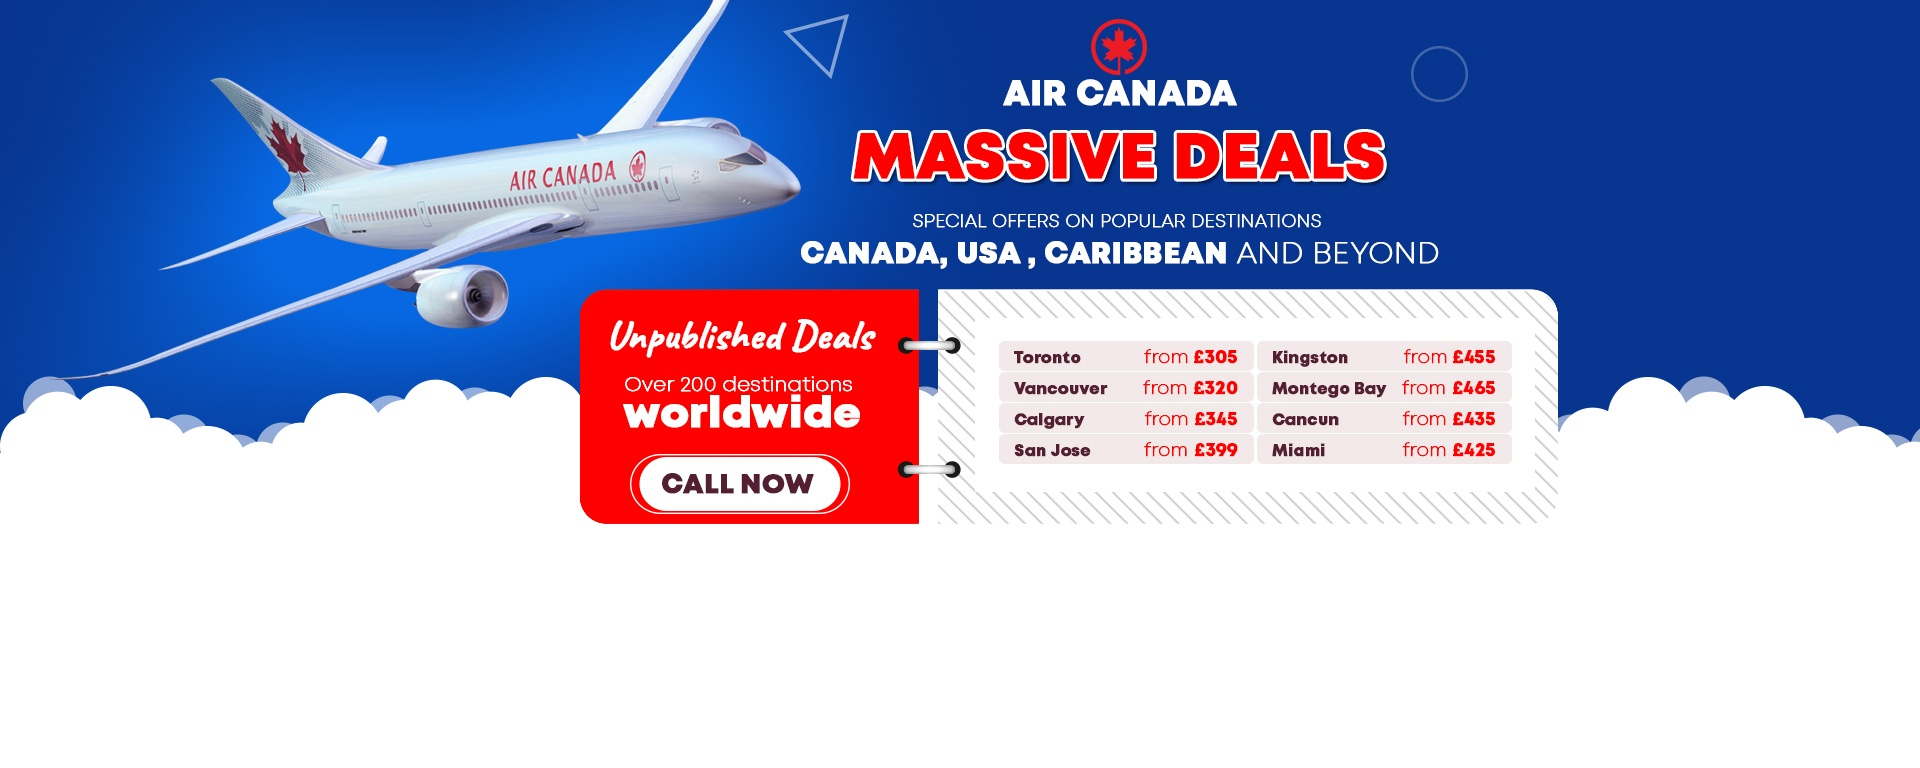 Air Canada Massive Deals